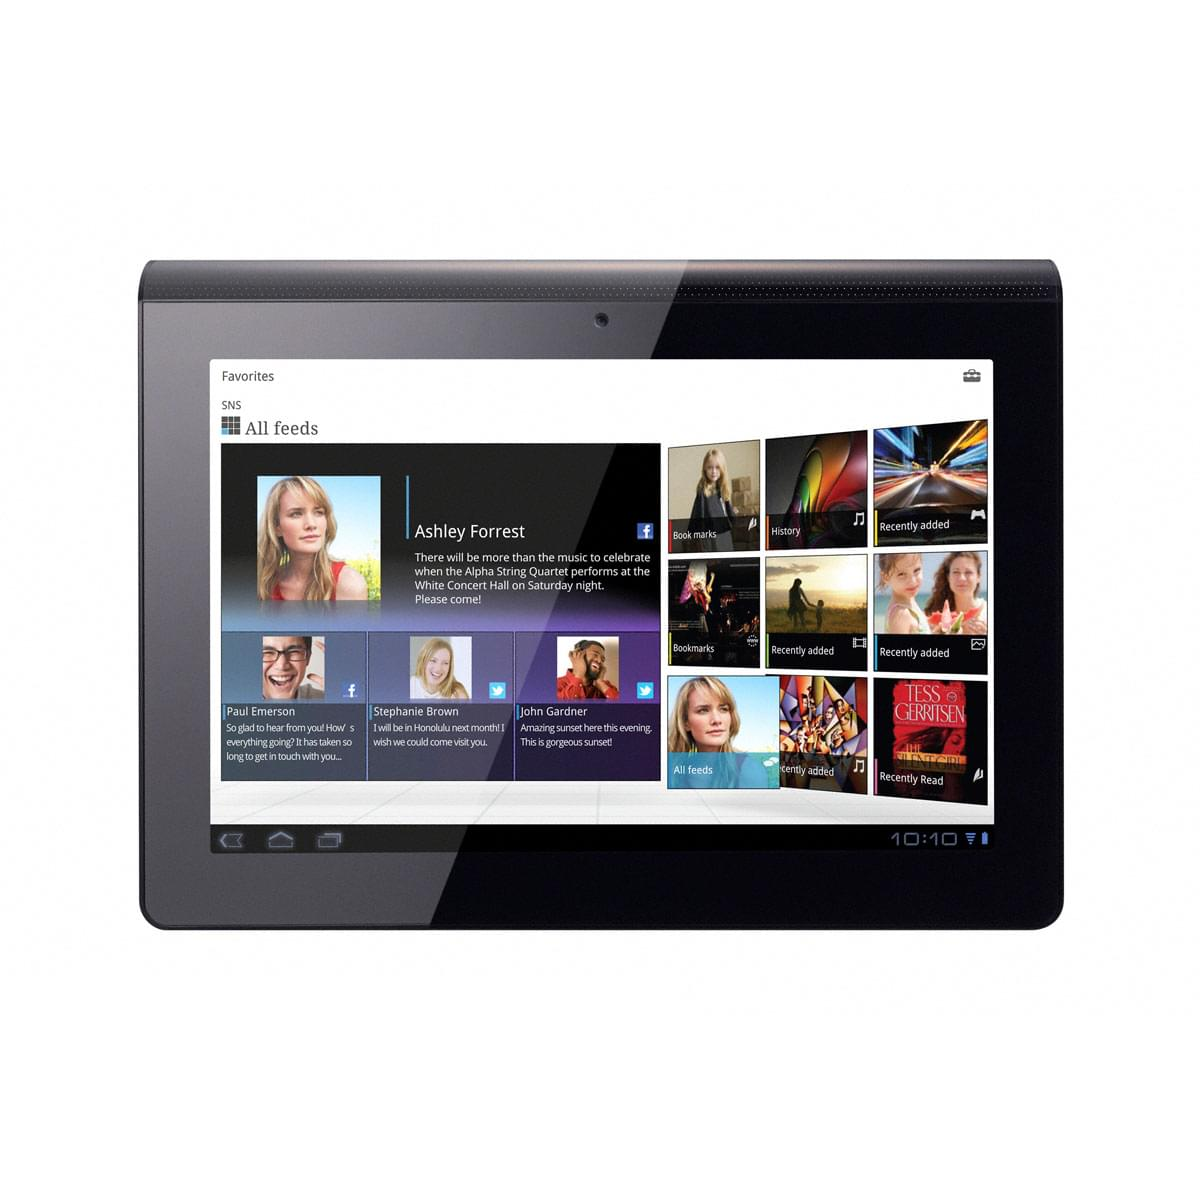 Sony Tablet S 16Go - Tablette tactile Sony - Cybertek.fr - 0